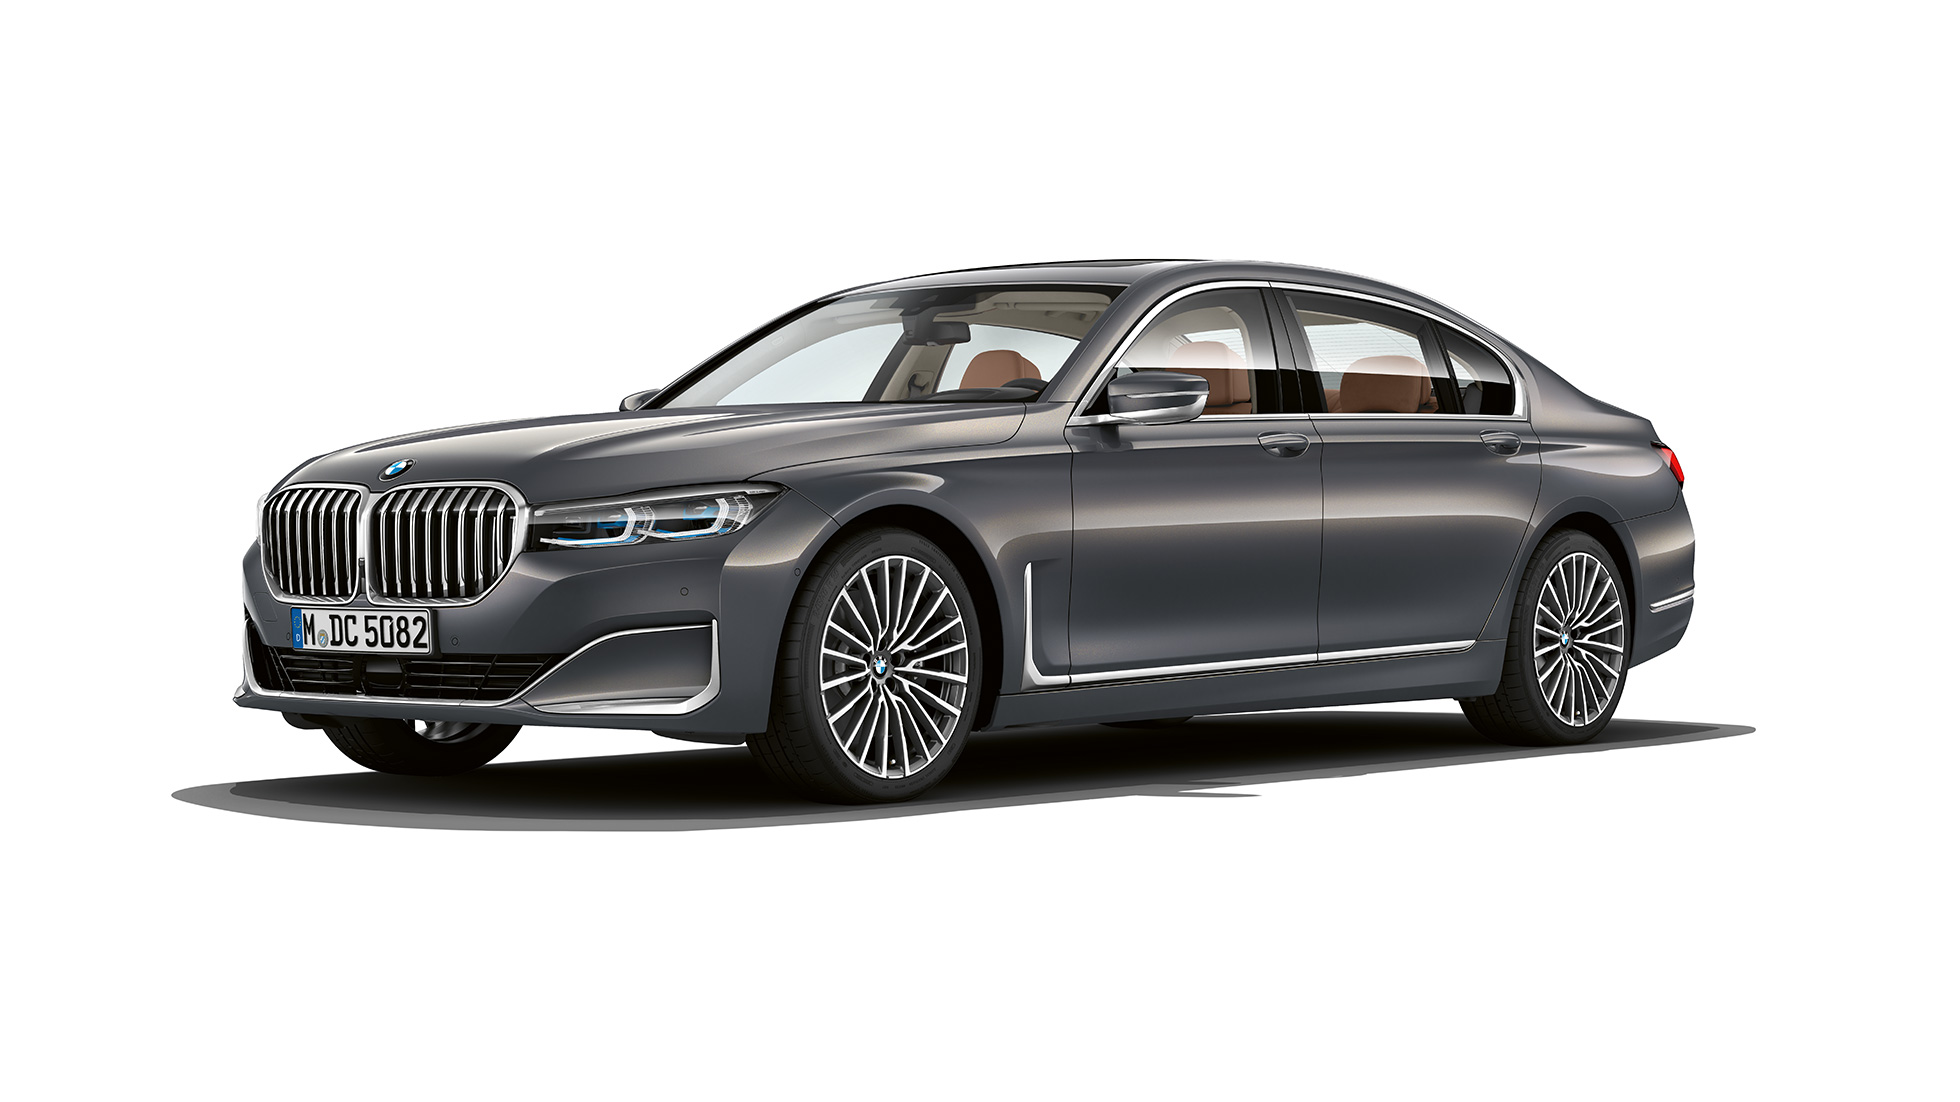 Grey BMW 7 Series Saloon with Exterior Design Pure Excellence in three-quarter front view